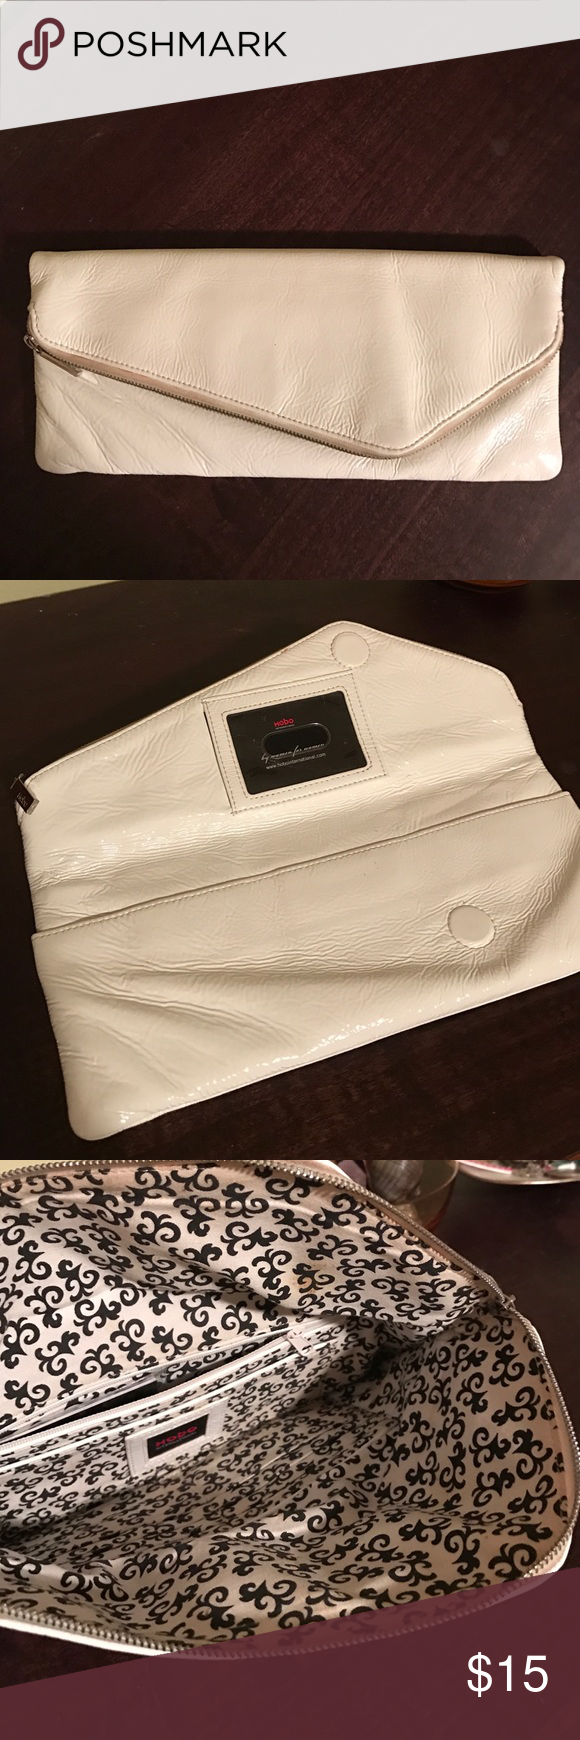 Soft patent leather clutch by Hobo International Gorgeous Hobo International clutch bag. Soft and buttery. Top zip closure and magnetic closure. Two inside pockets and outside pocket under flap. Small stain on the lining inside.  10 inches wide. HOBO Bags Clutches & Wristlets